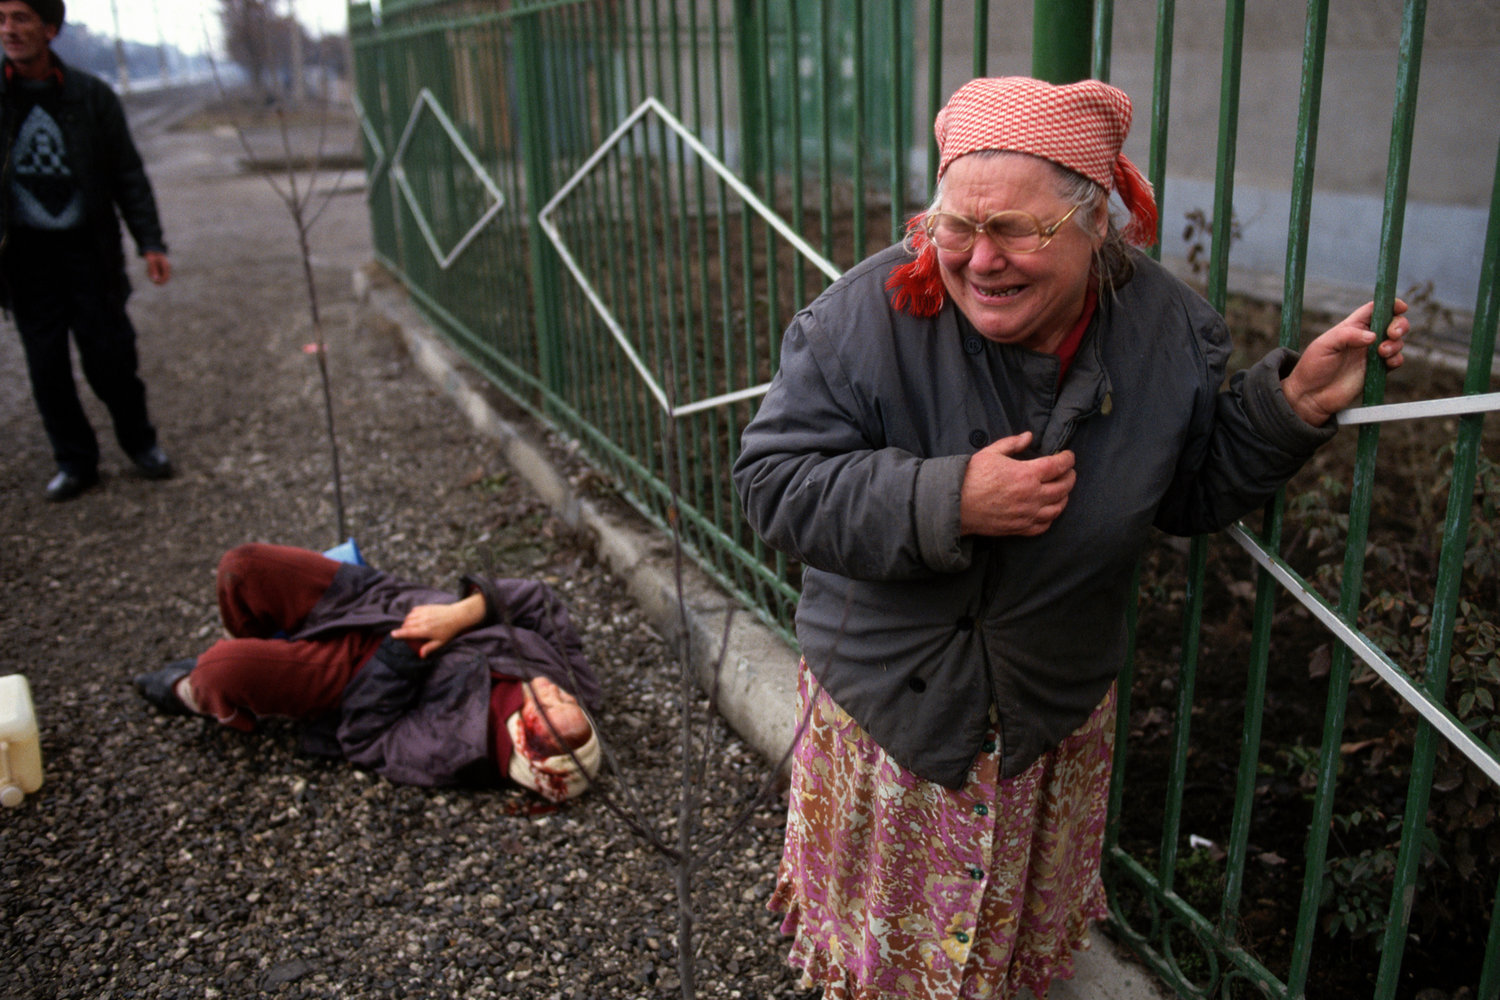 """War in Chechnya, 1995<span class=""""photo-essays-link""""><span class=""""separator"""">・</span><a href=""""/photo-essays"""">Photo-essays</a></span>"""